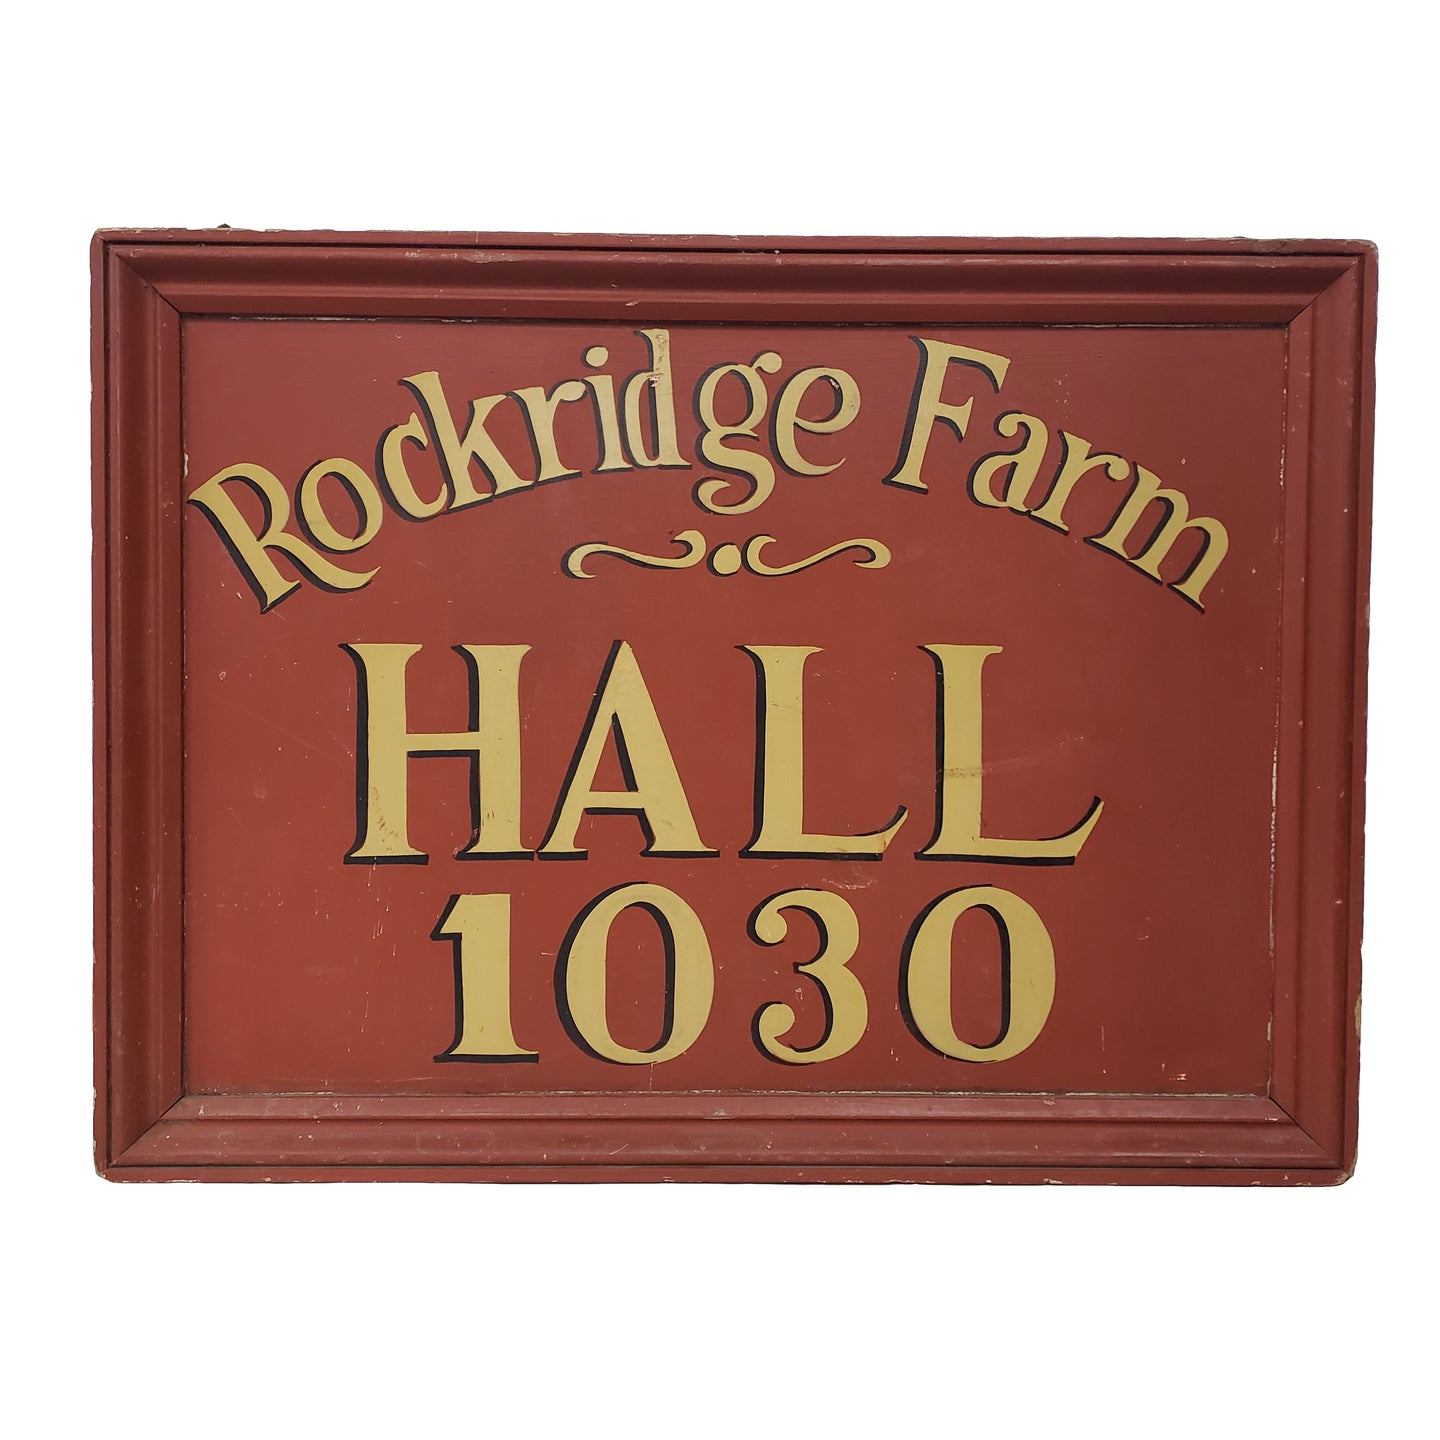 Rockridge Farm Trade Sign